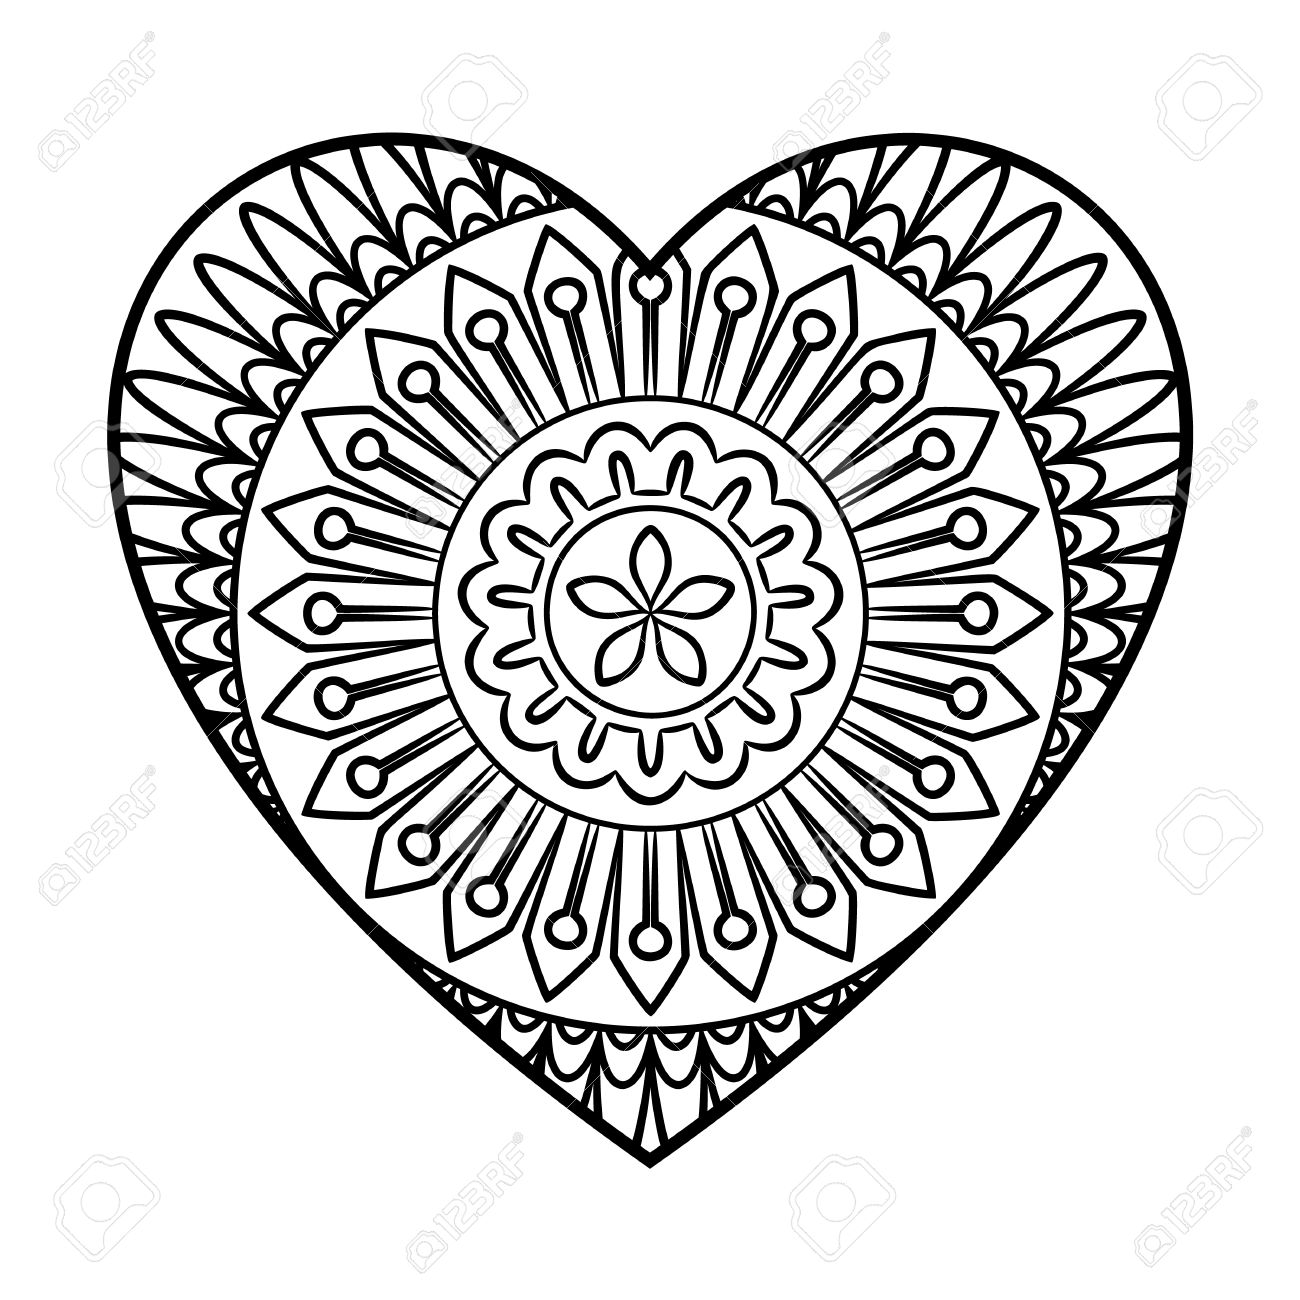 Doodle Heart Mandala Coloring Page. Outline Floral Design Element ...